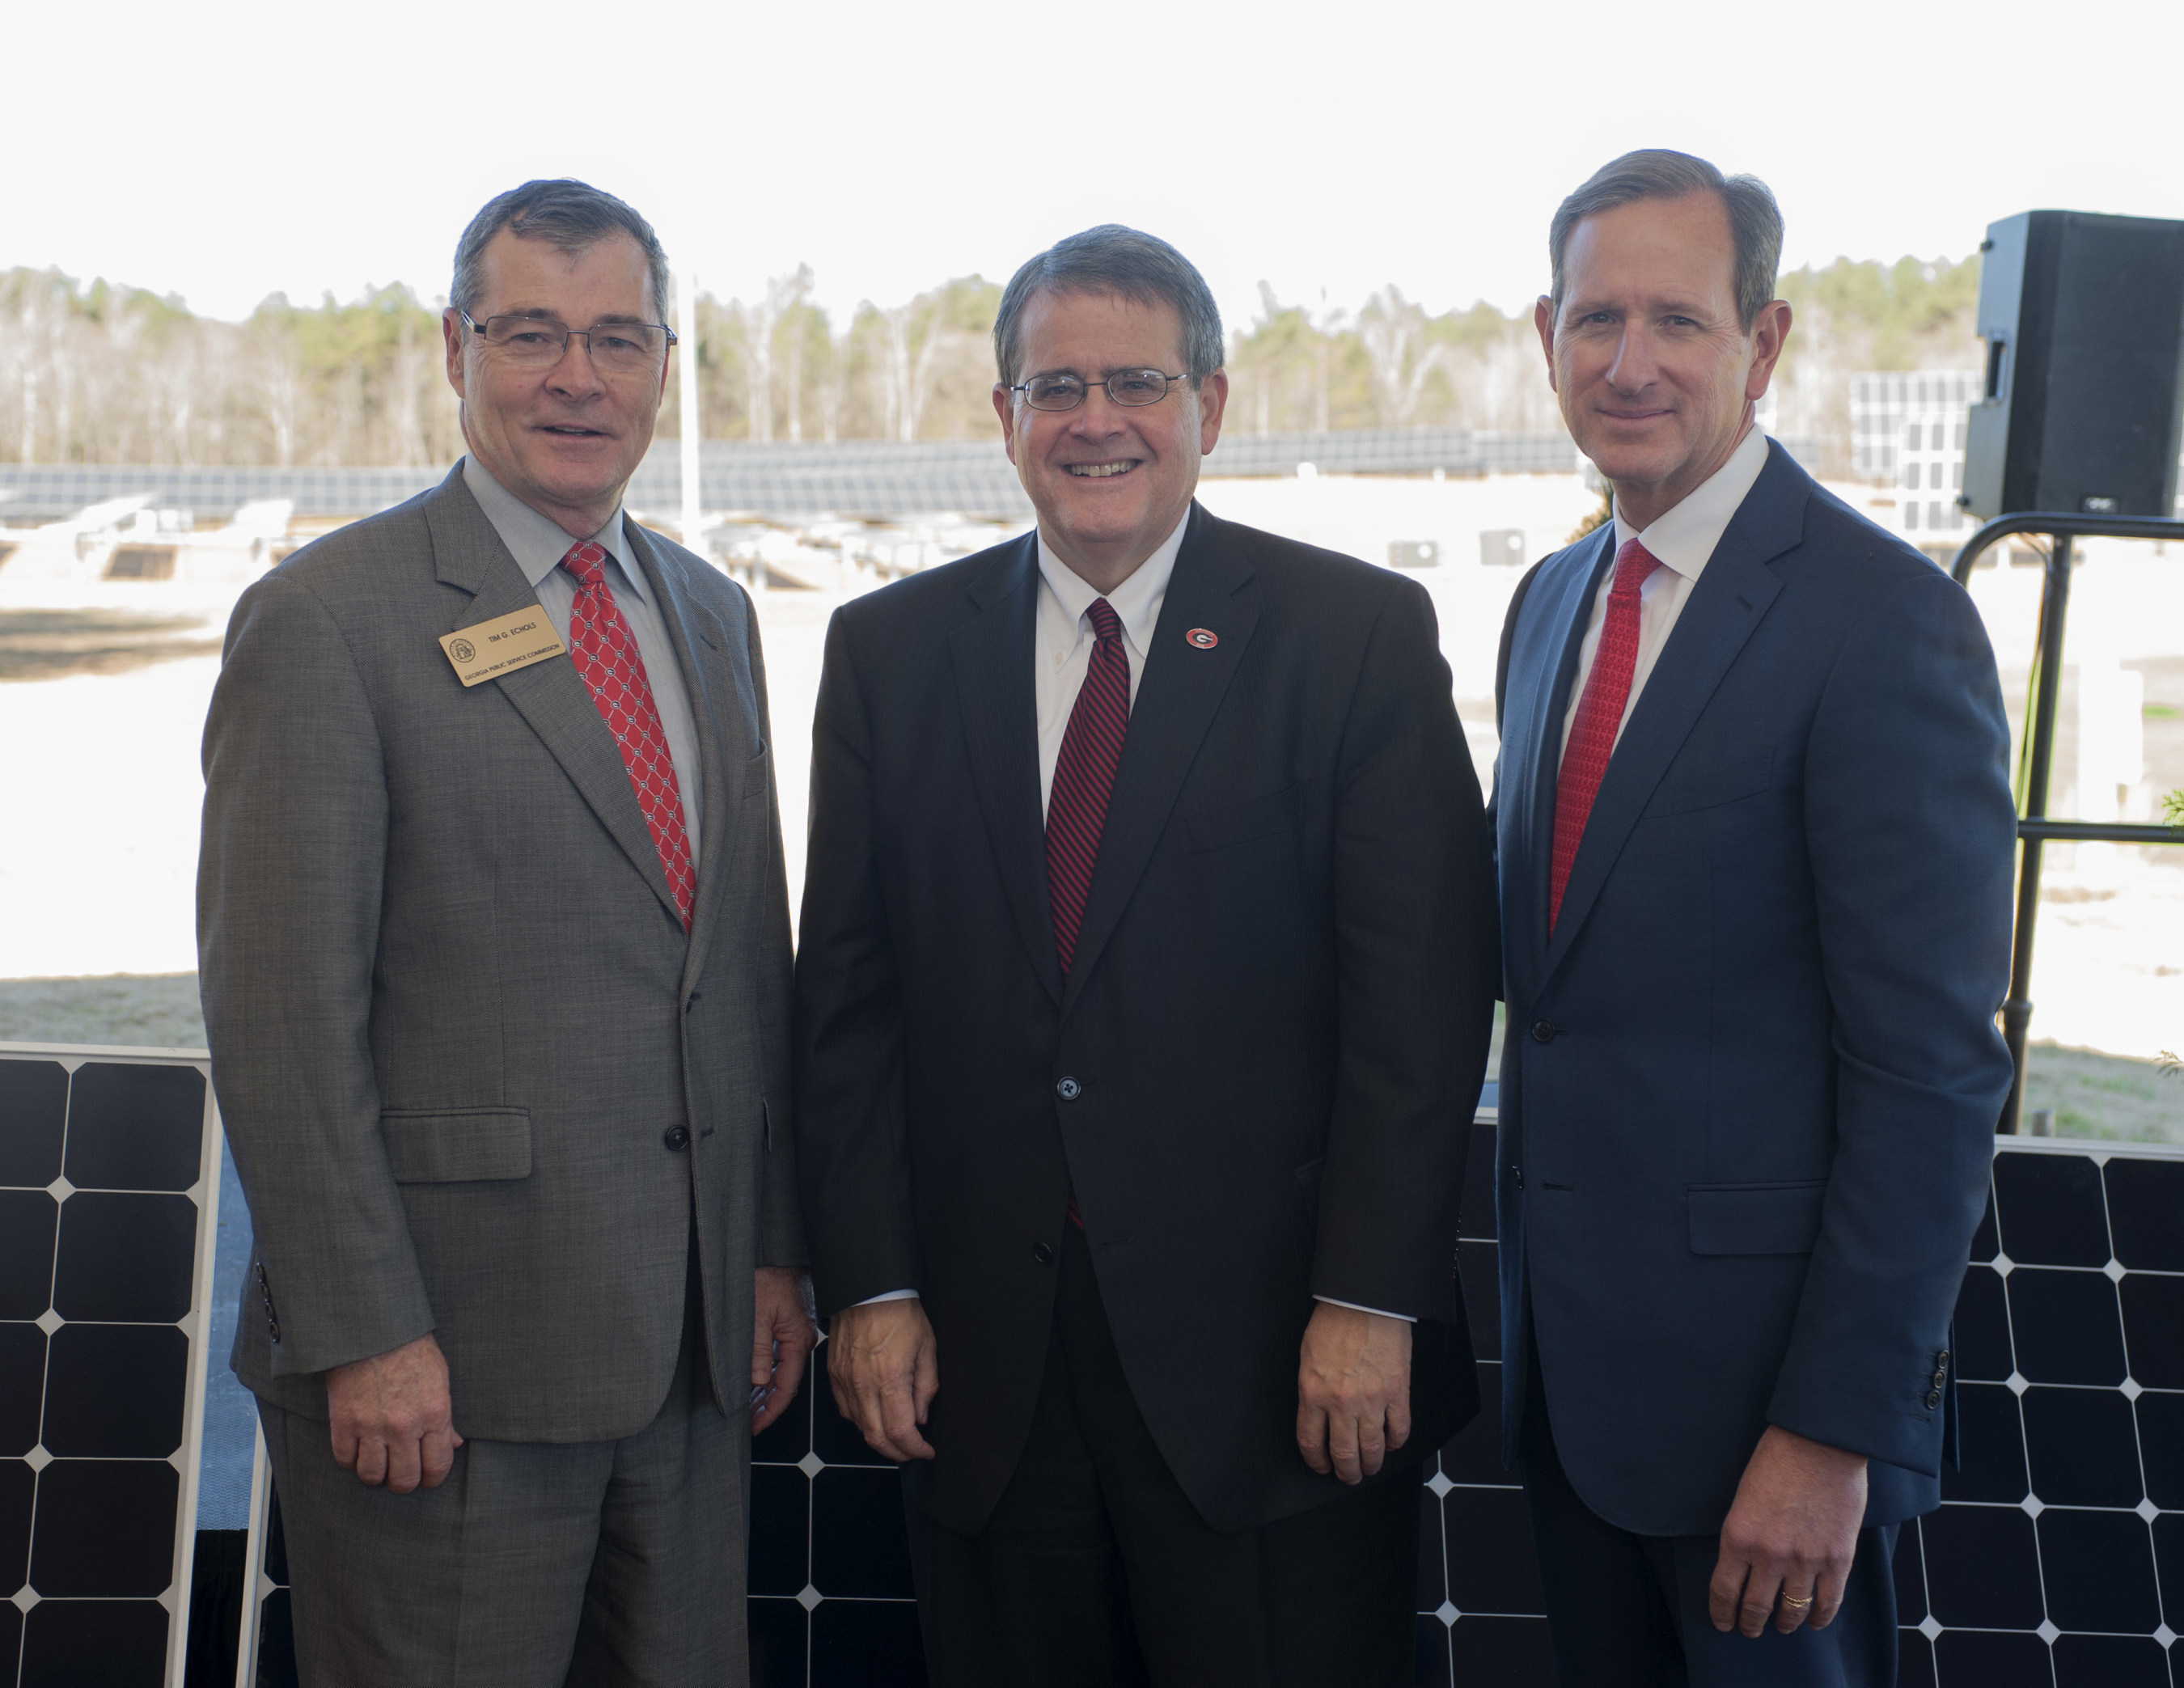 (Left to Right) UGA President Jere W. Morehead; Georgia Power Chairman, President & CEO Paul Bowers; and ...